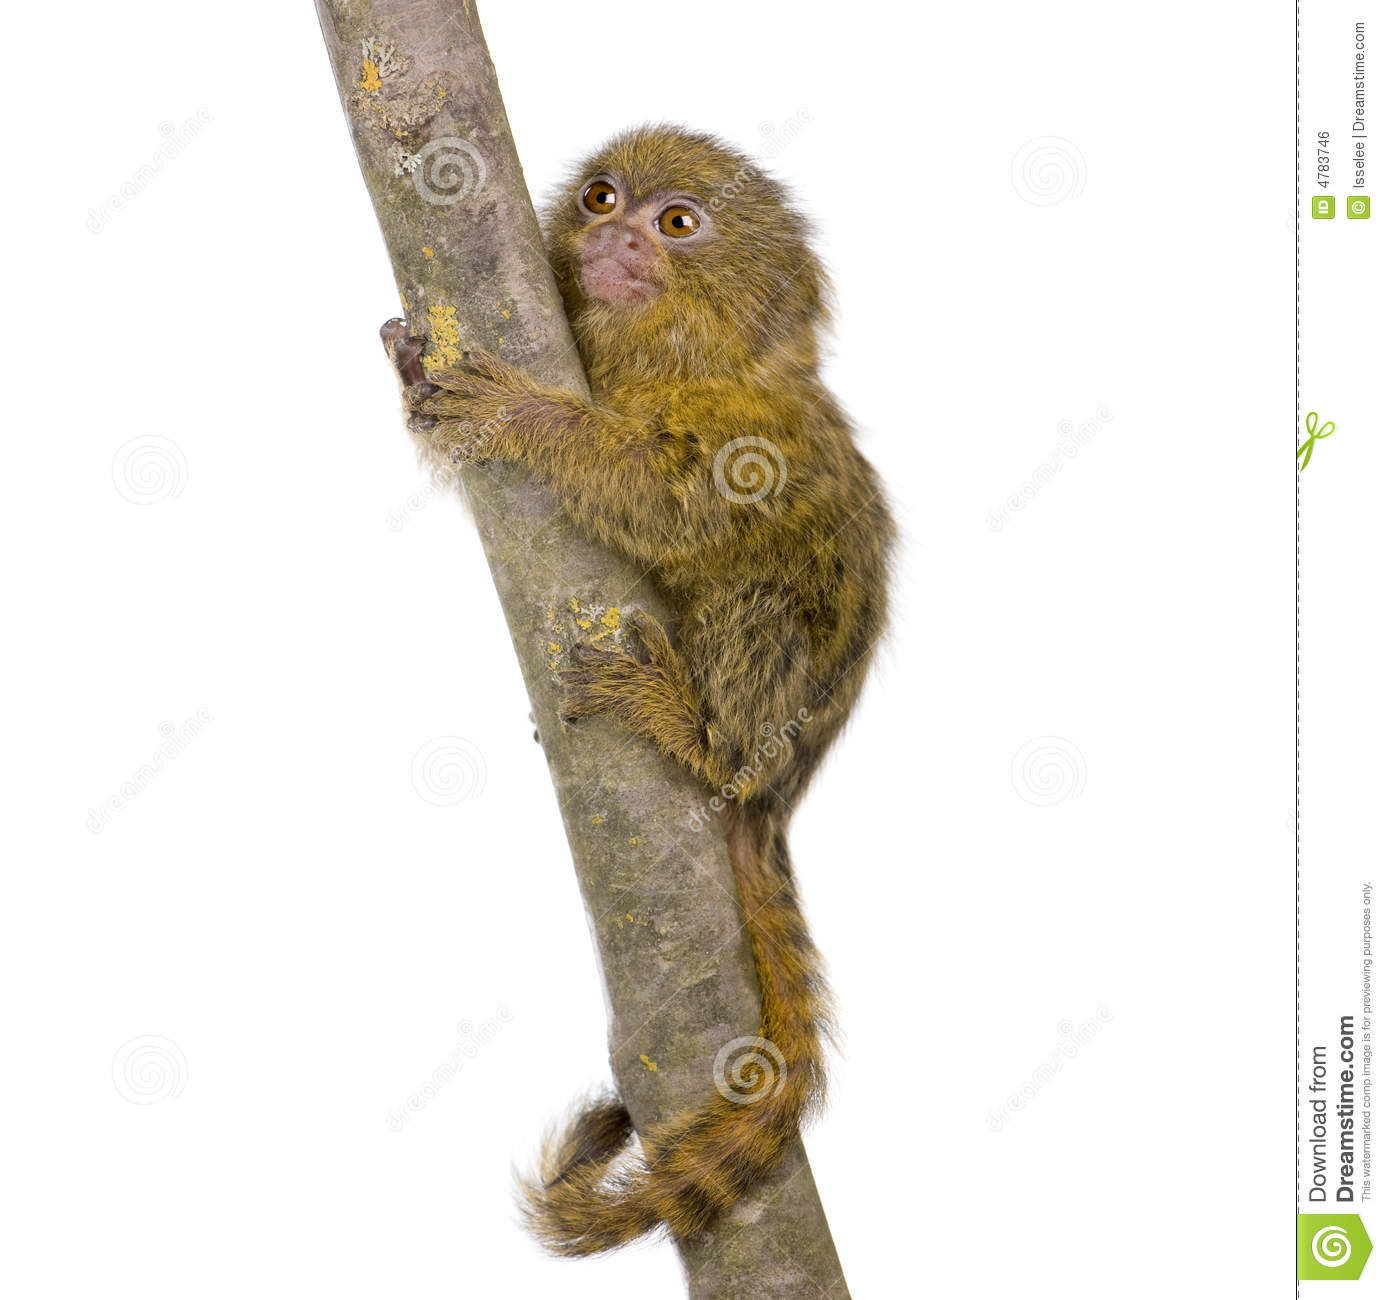 Pygmy Marmoset clipart #19, Download drawings